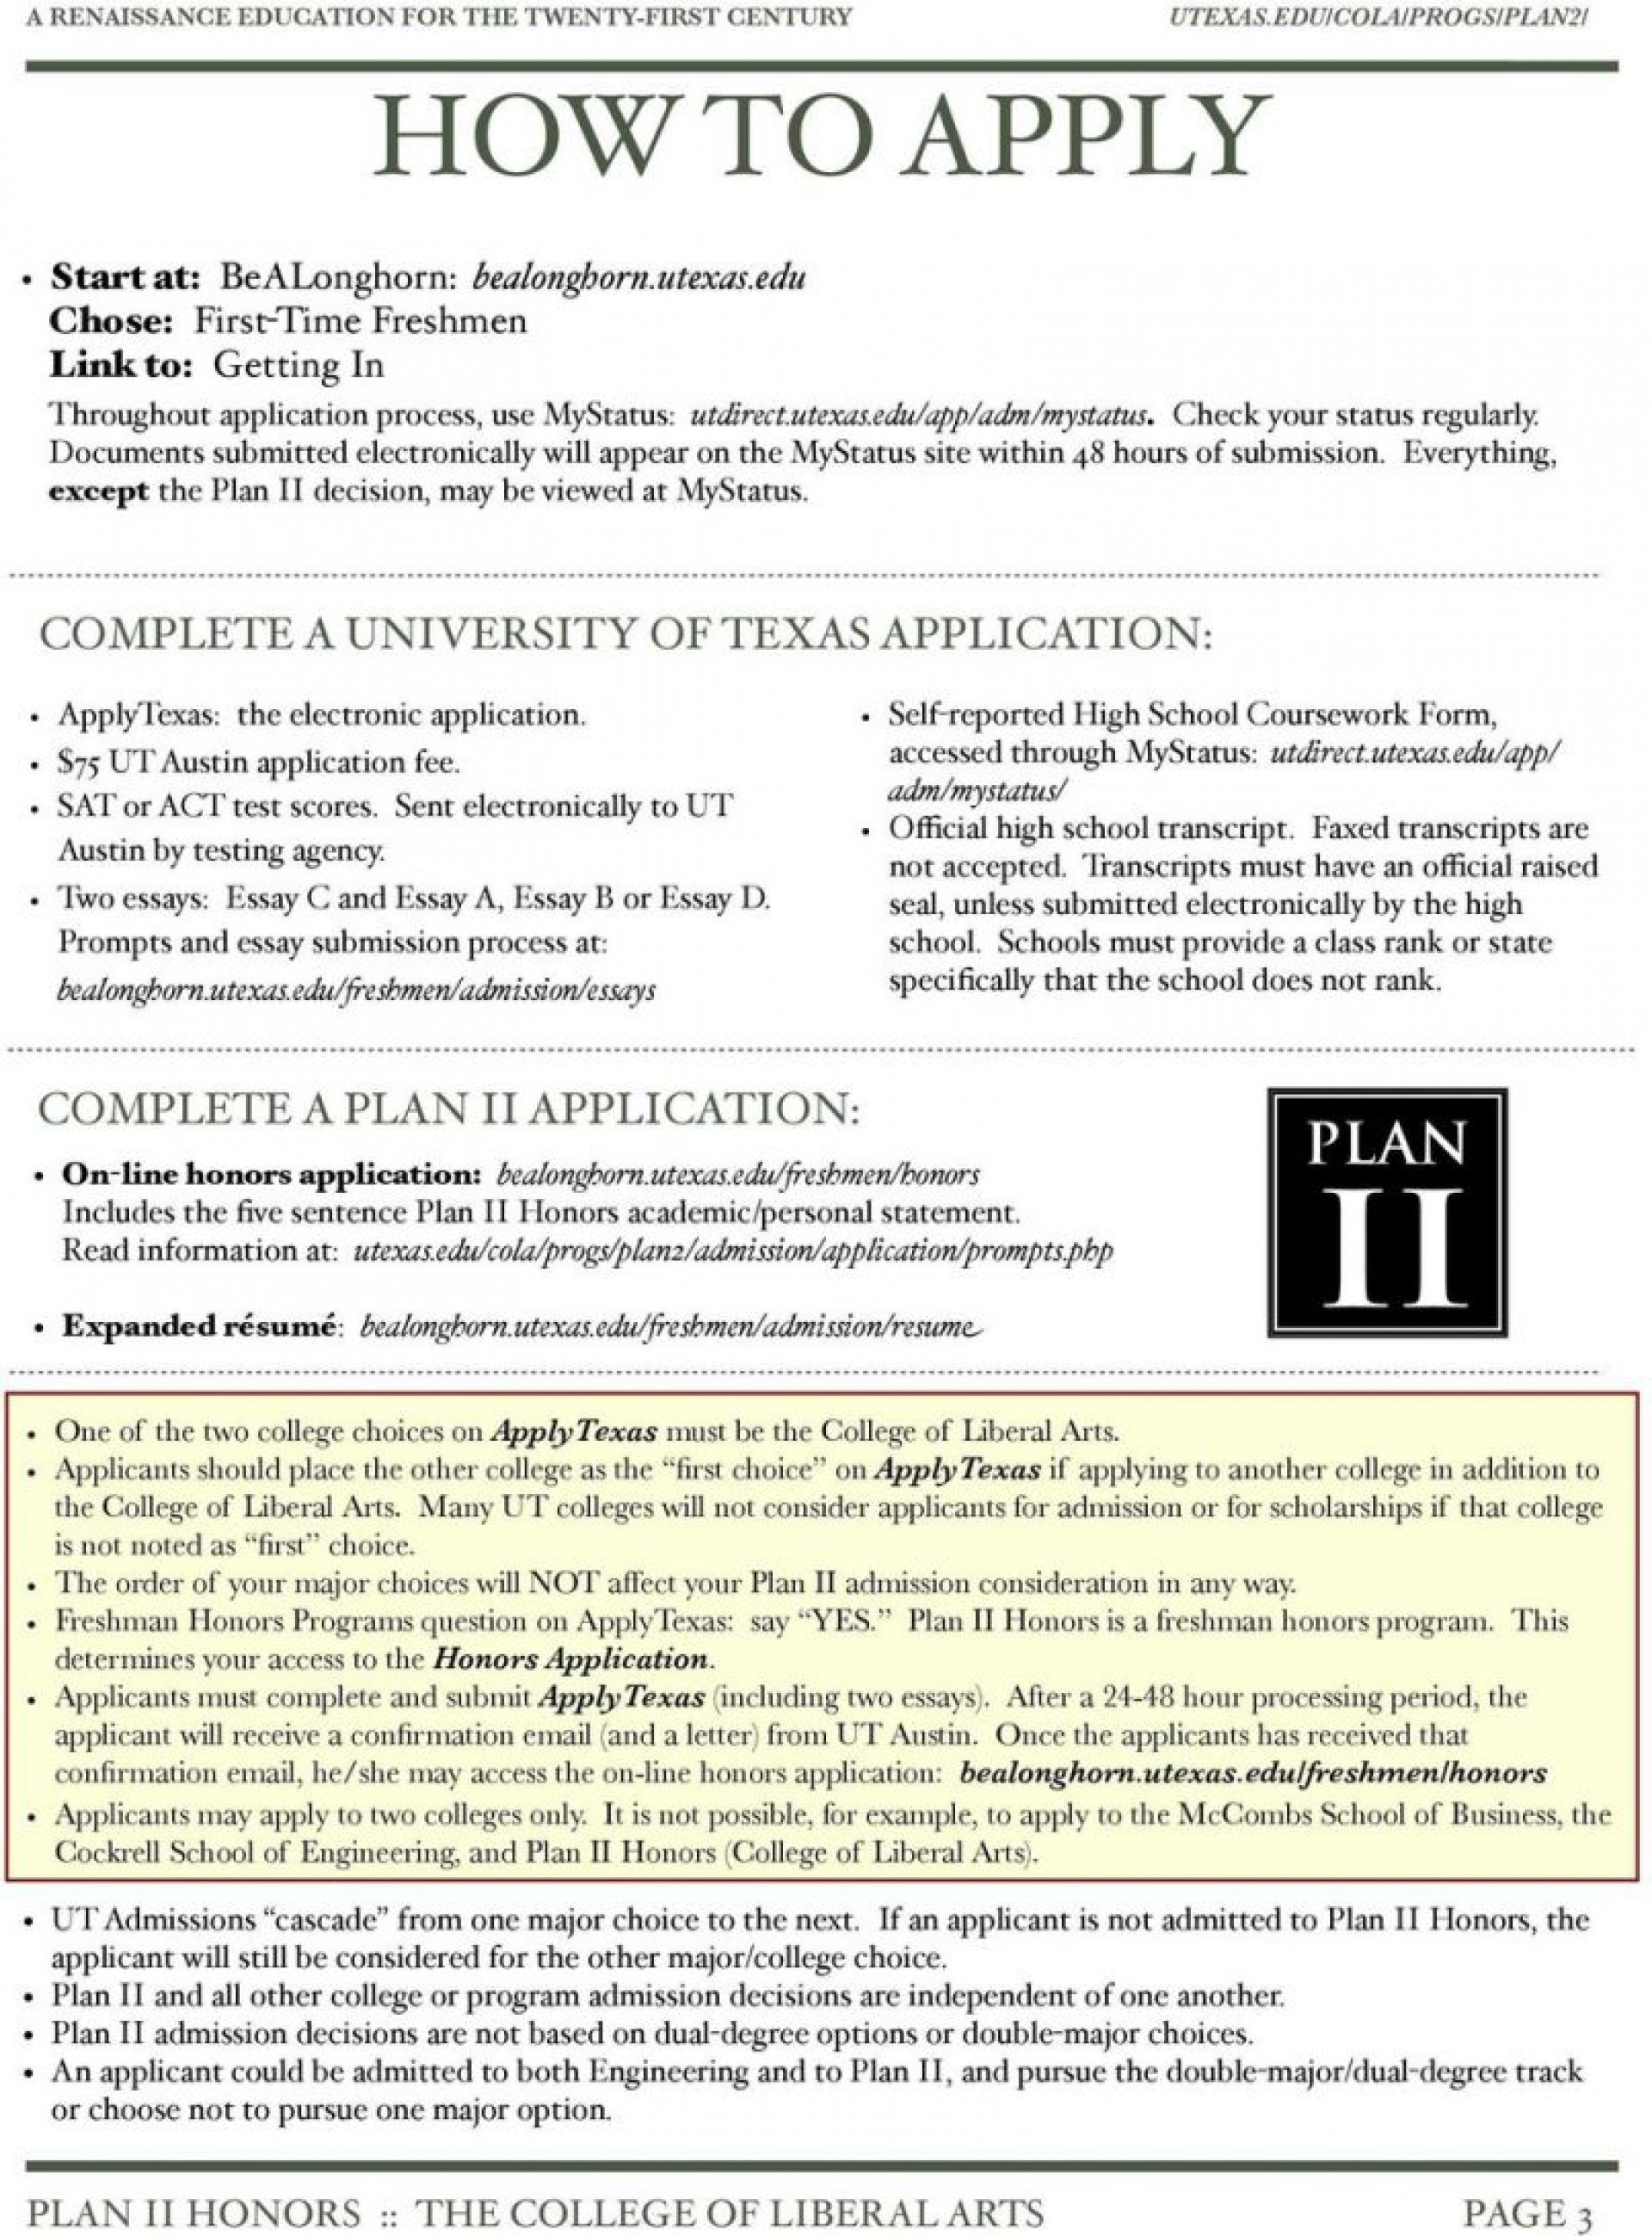 005 Apply Texas Essay Prompts Example Applytexas Poemdoc Or Topic Examples P Top A B And C 1920